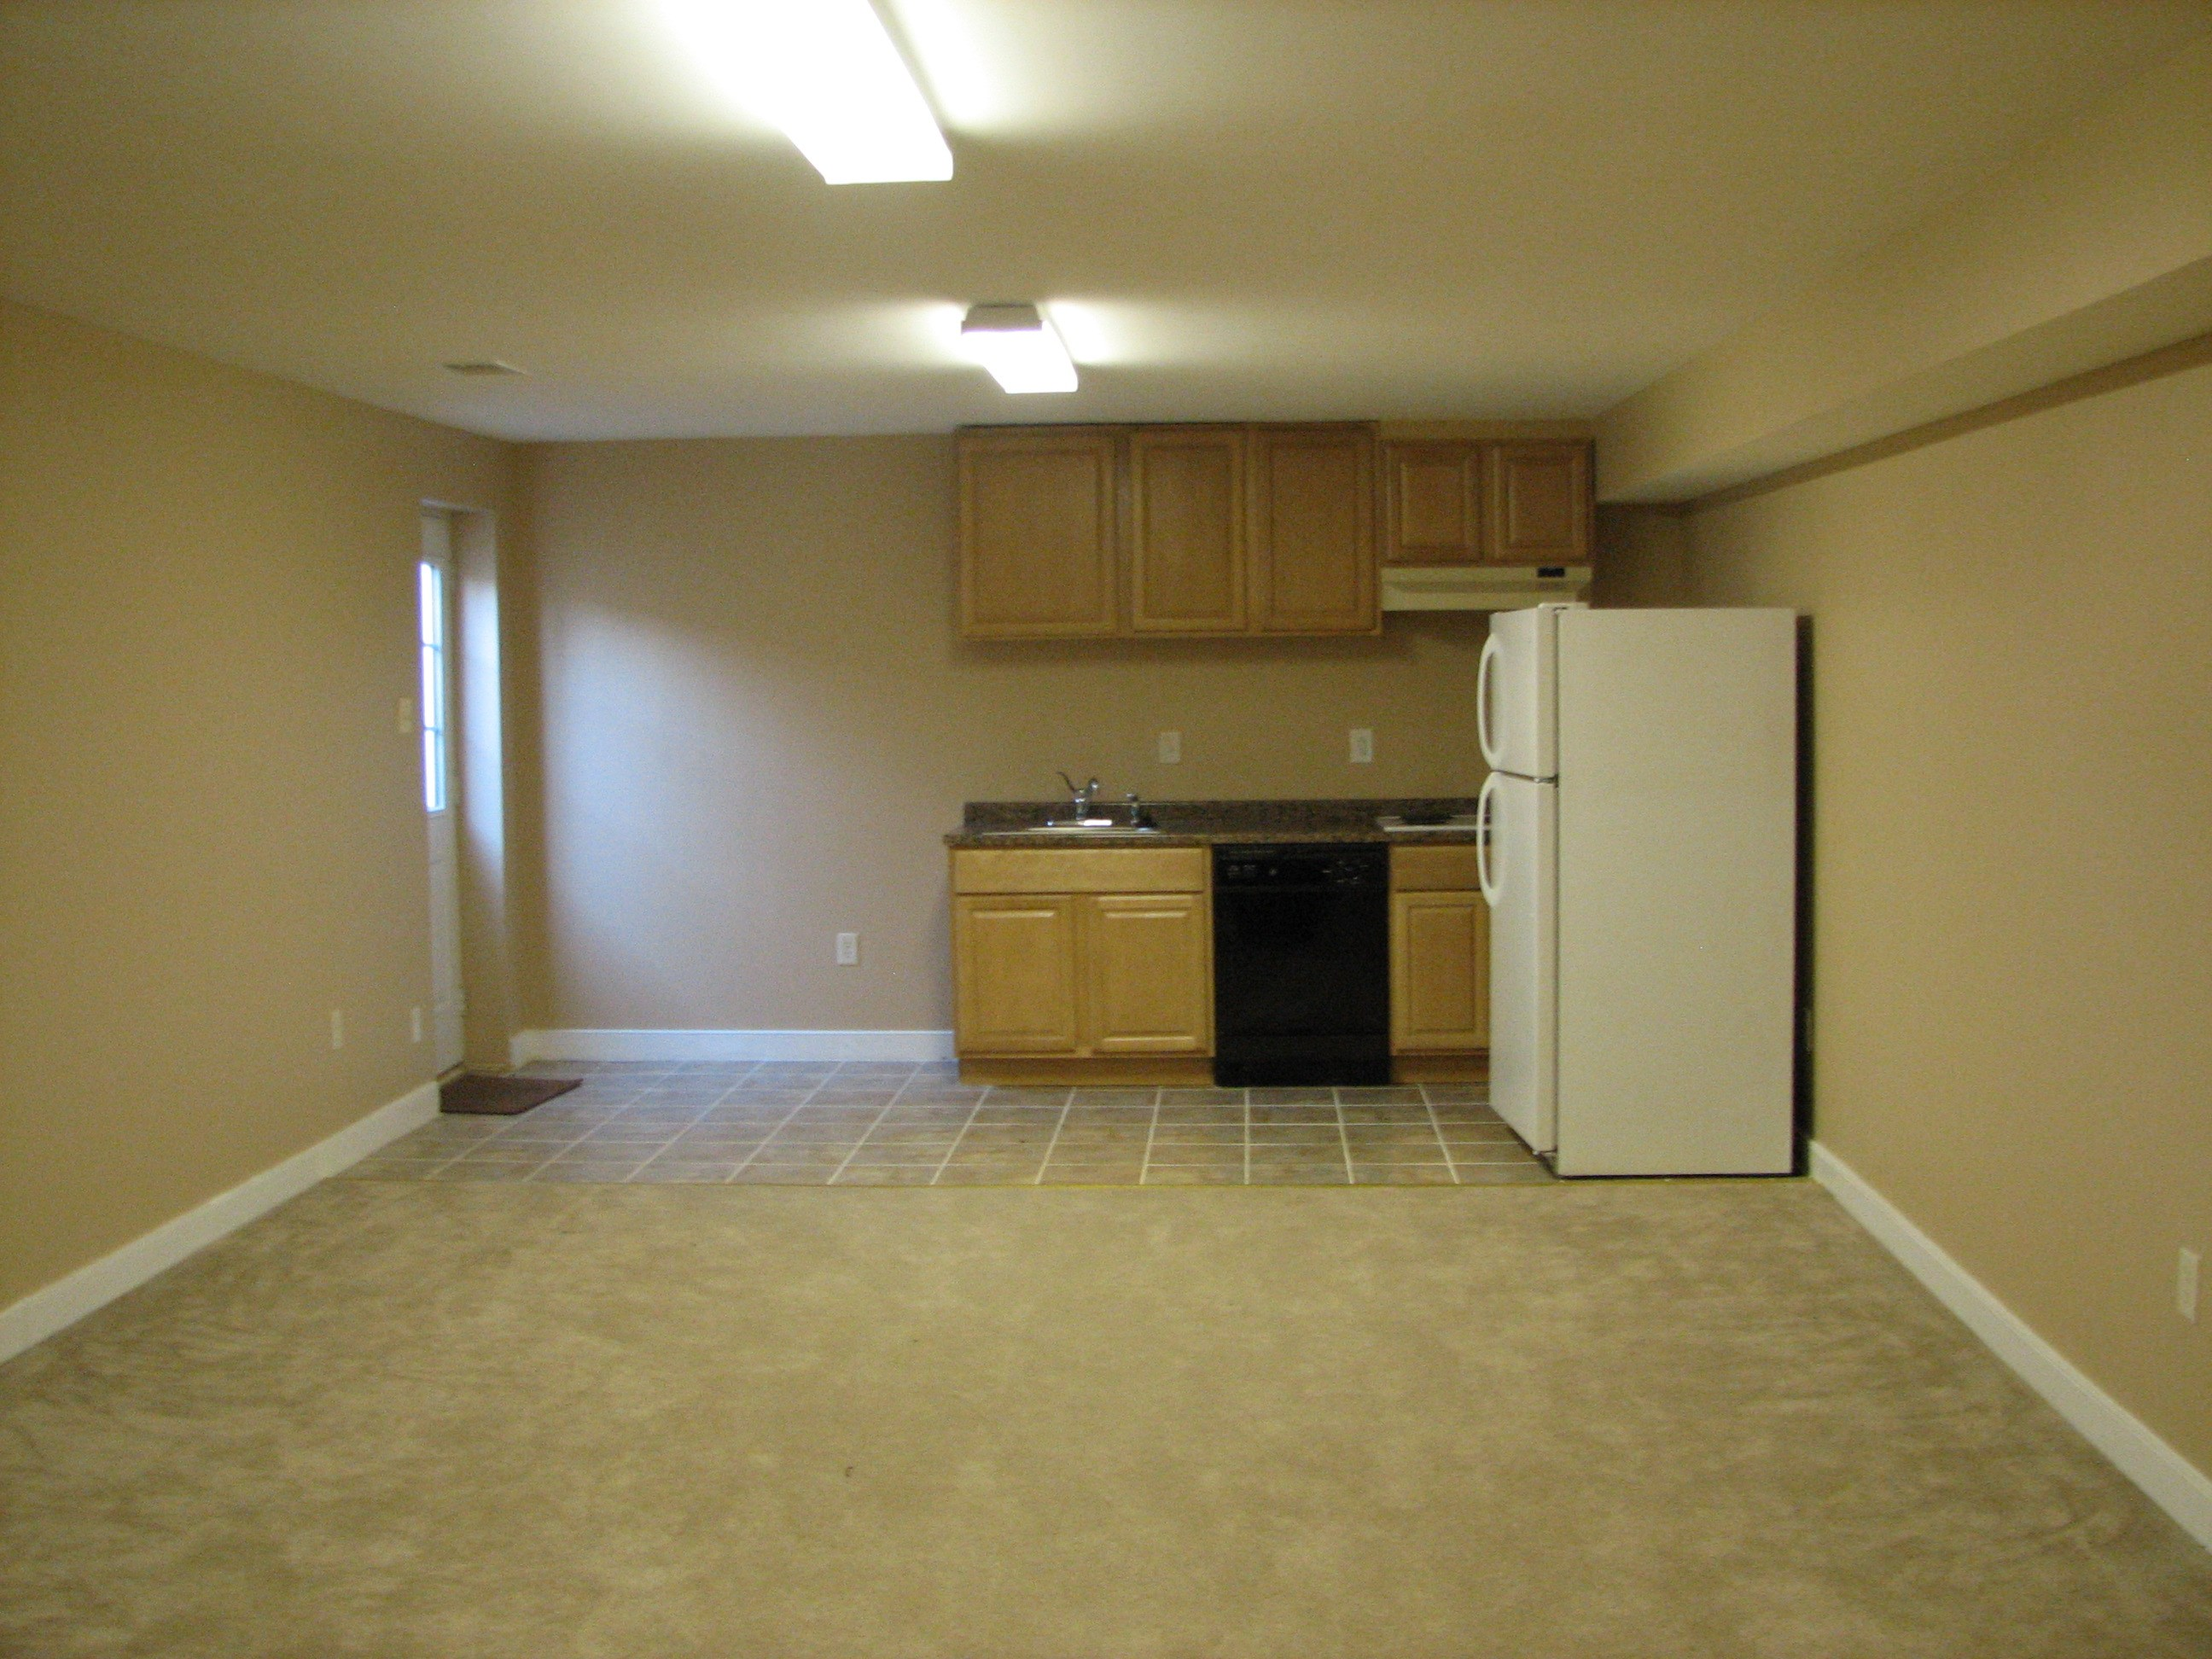 Rooms For Rent In Baltimore Apartments Flats Commercial Space - Basement apartments for rent maryland